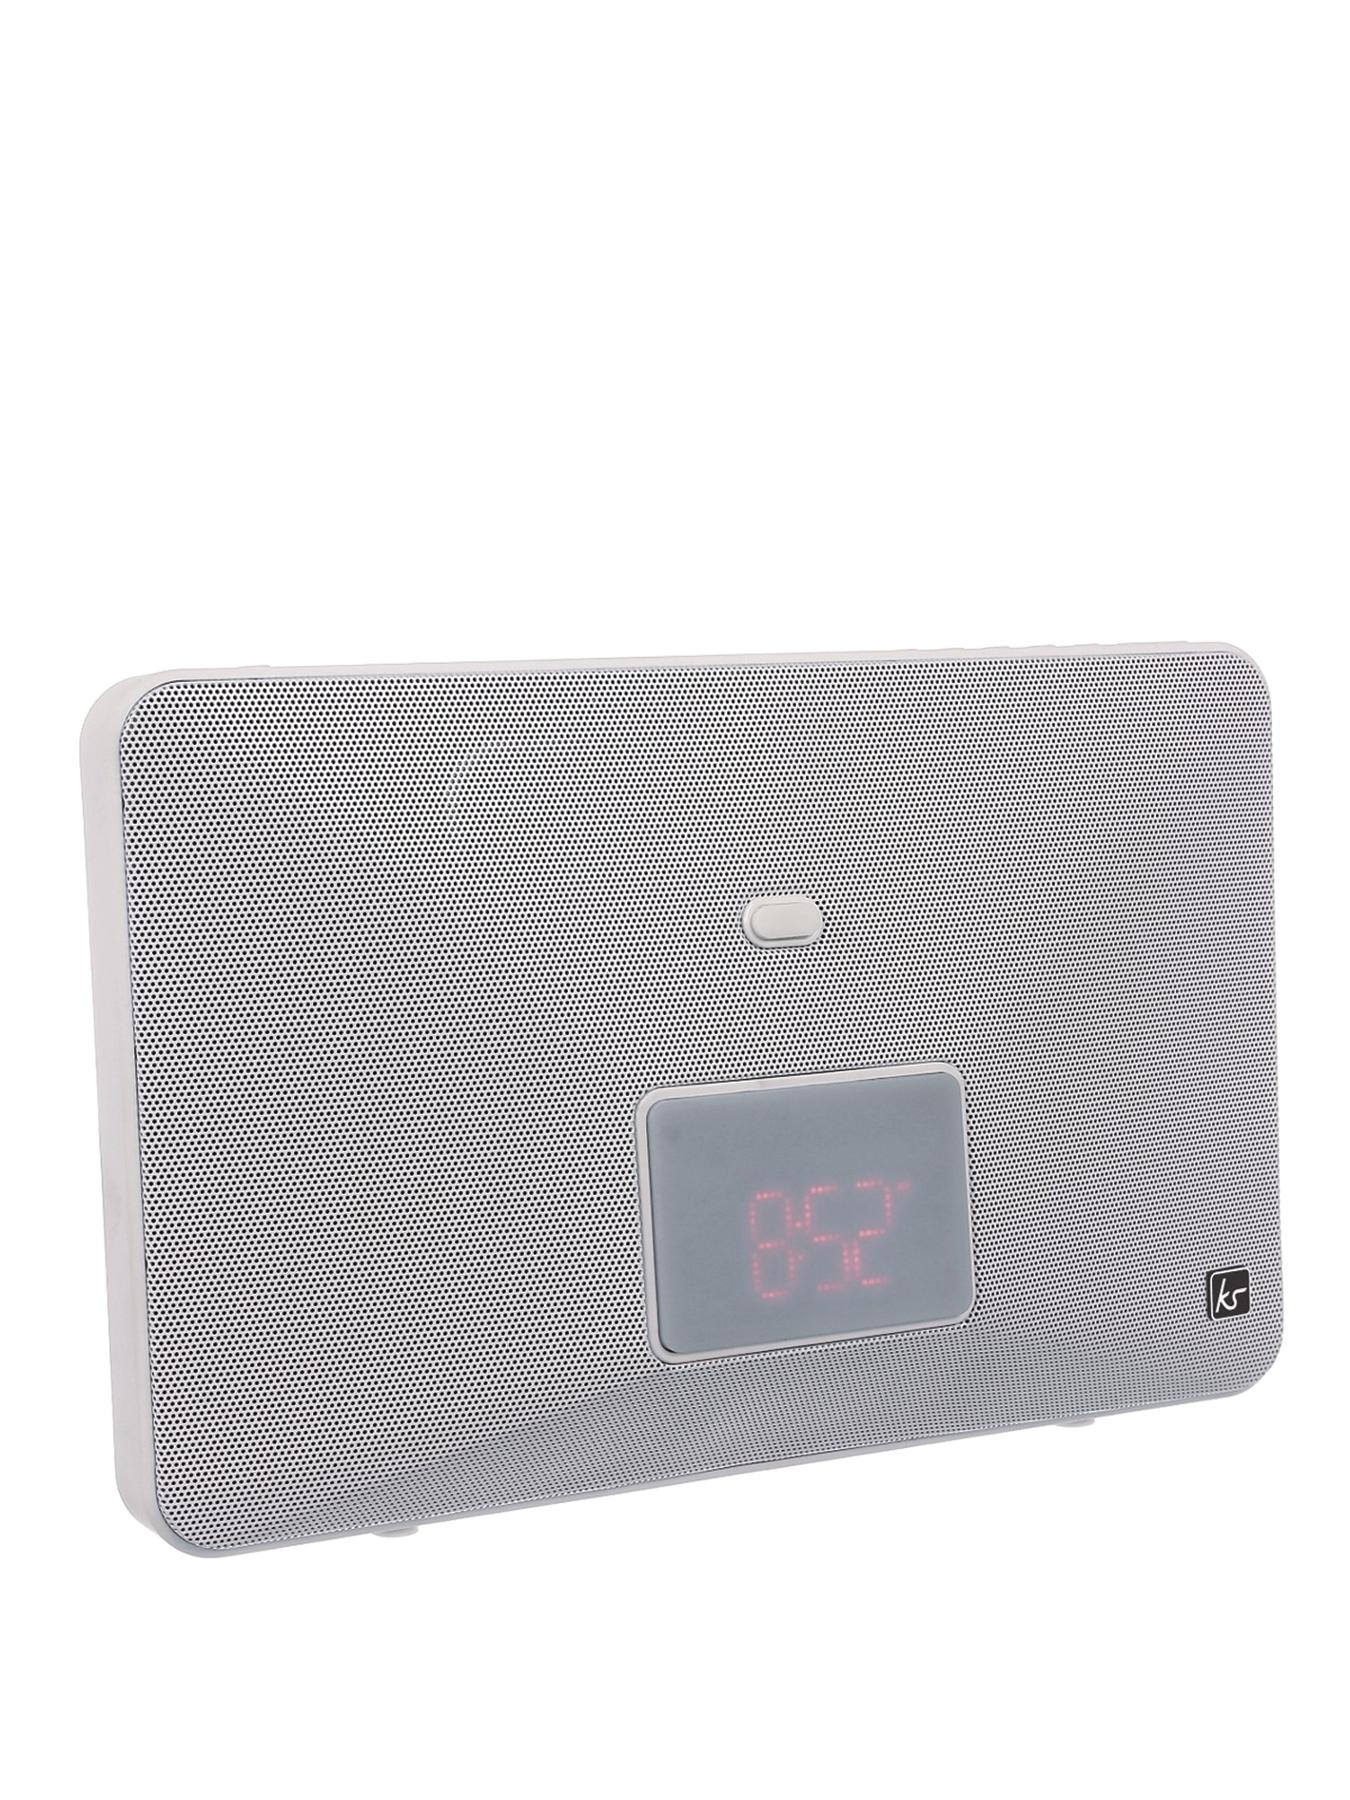 Kitsound Fresh 8 Pin Lightning Clock Radio Speaker Docking Station - White